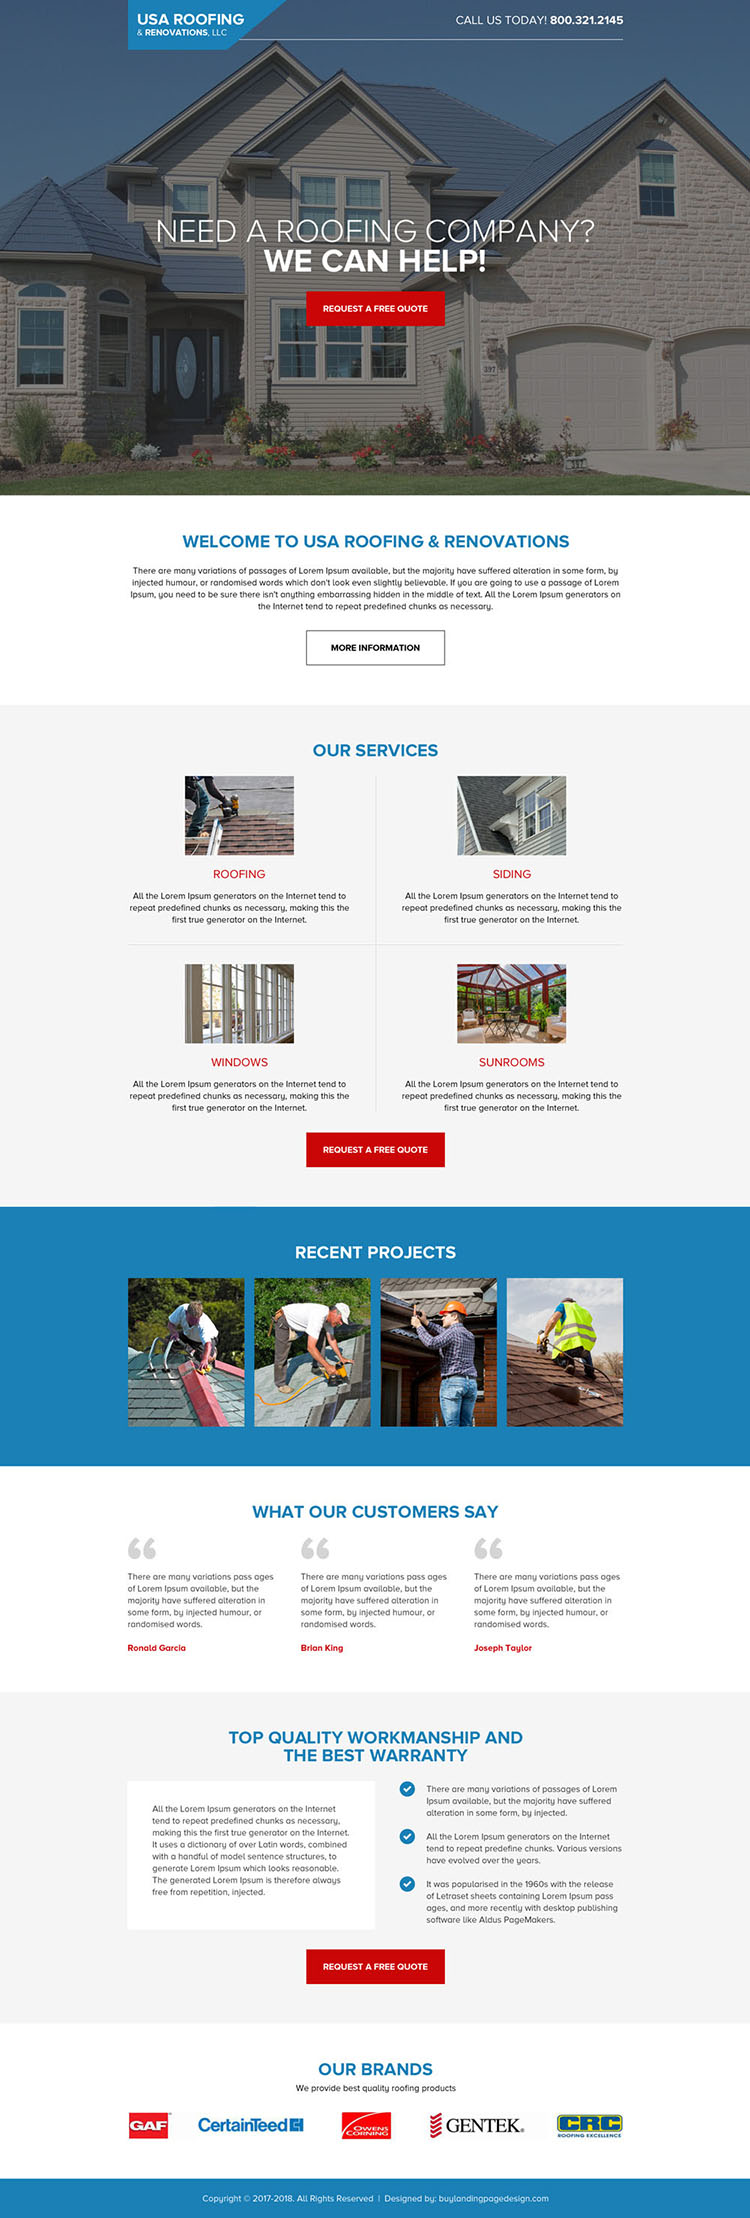 USA roofing and renovations modern long landing page design